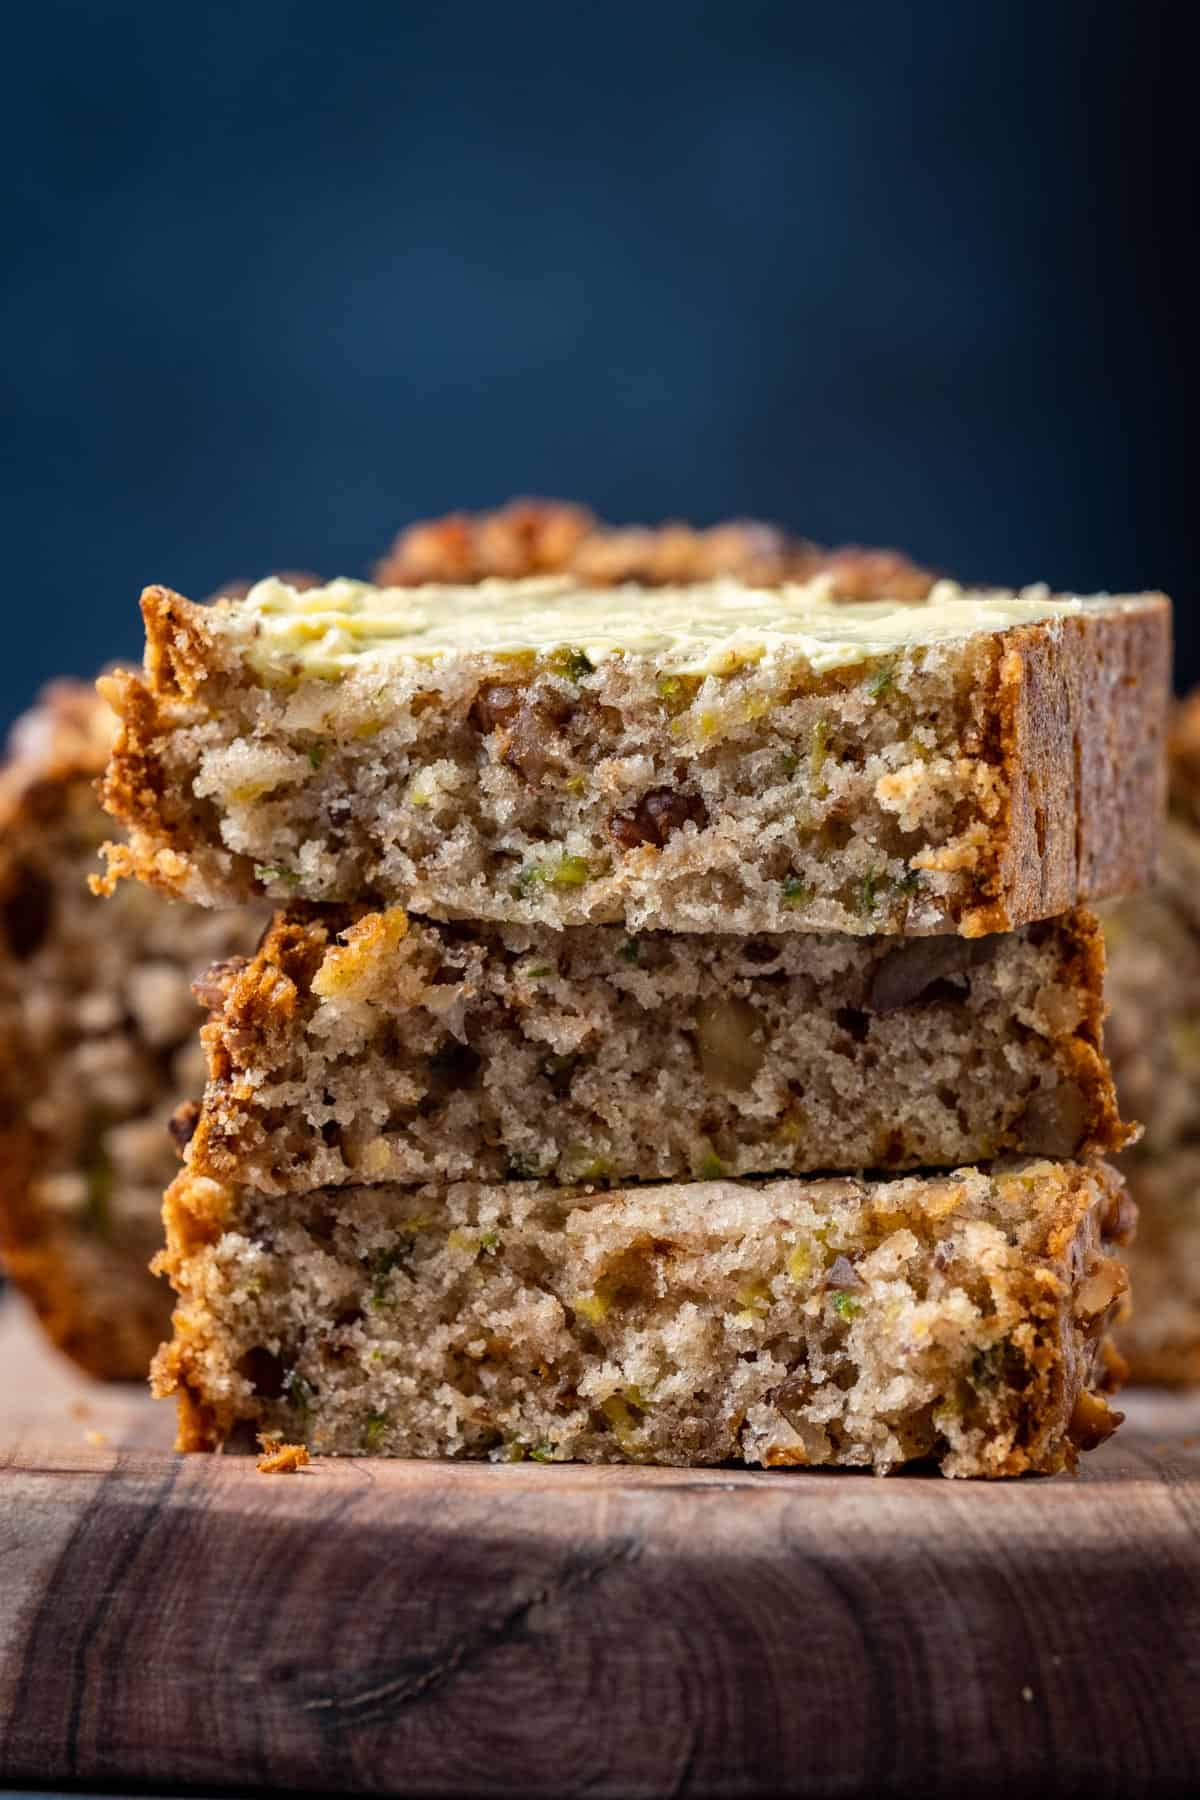 Slices of buttered vegan zucchini bread stacked up on a wooden board.